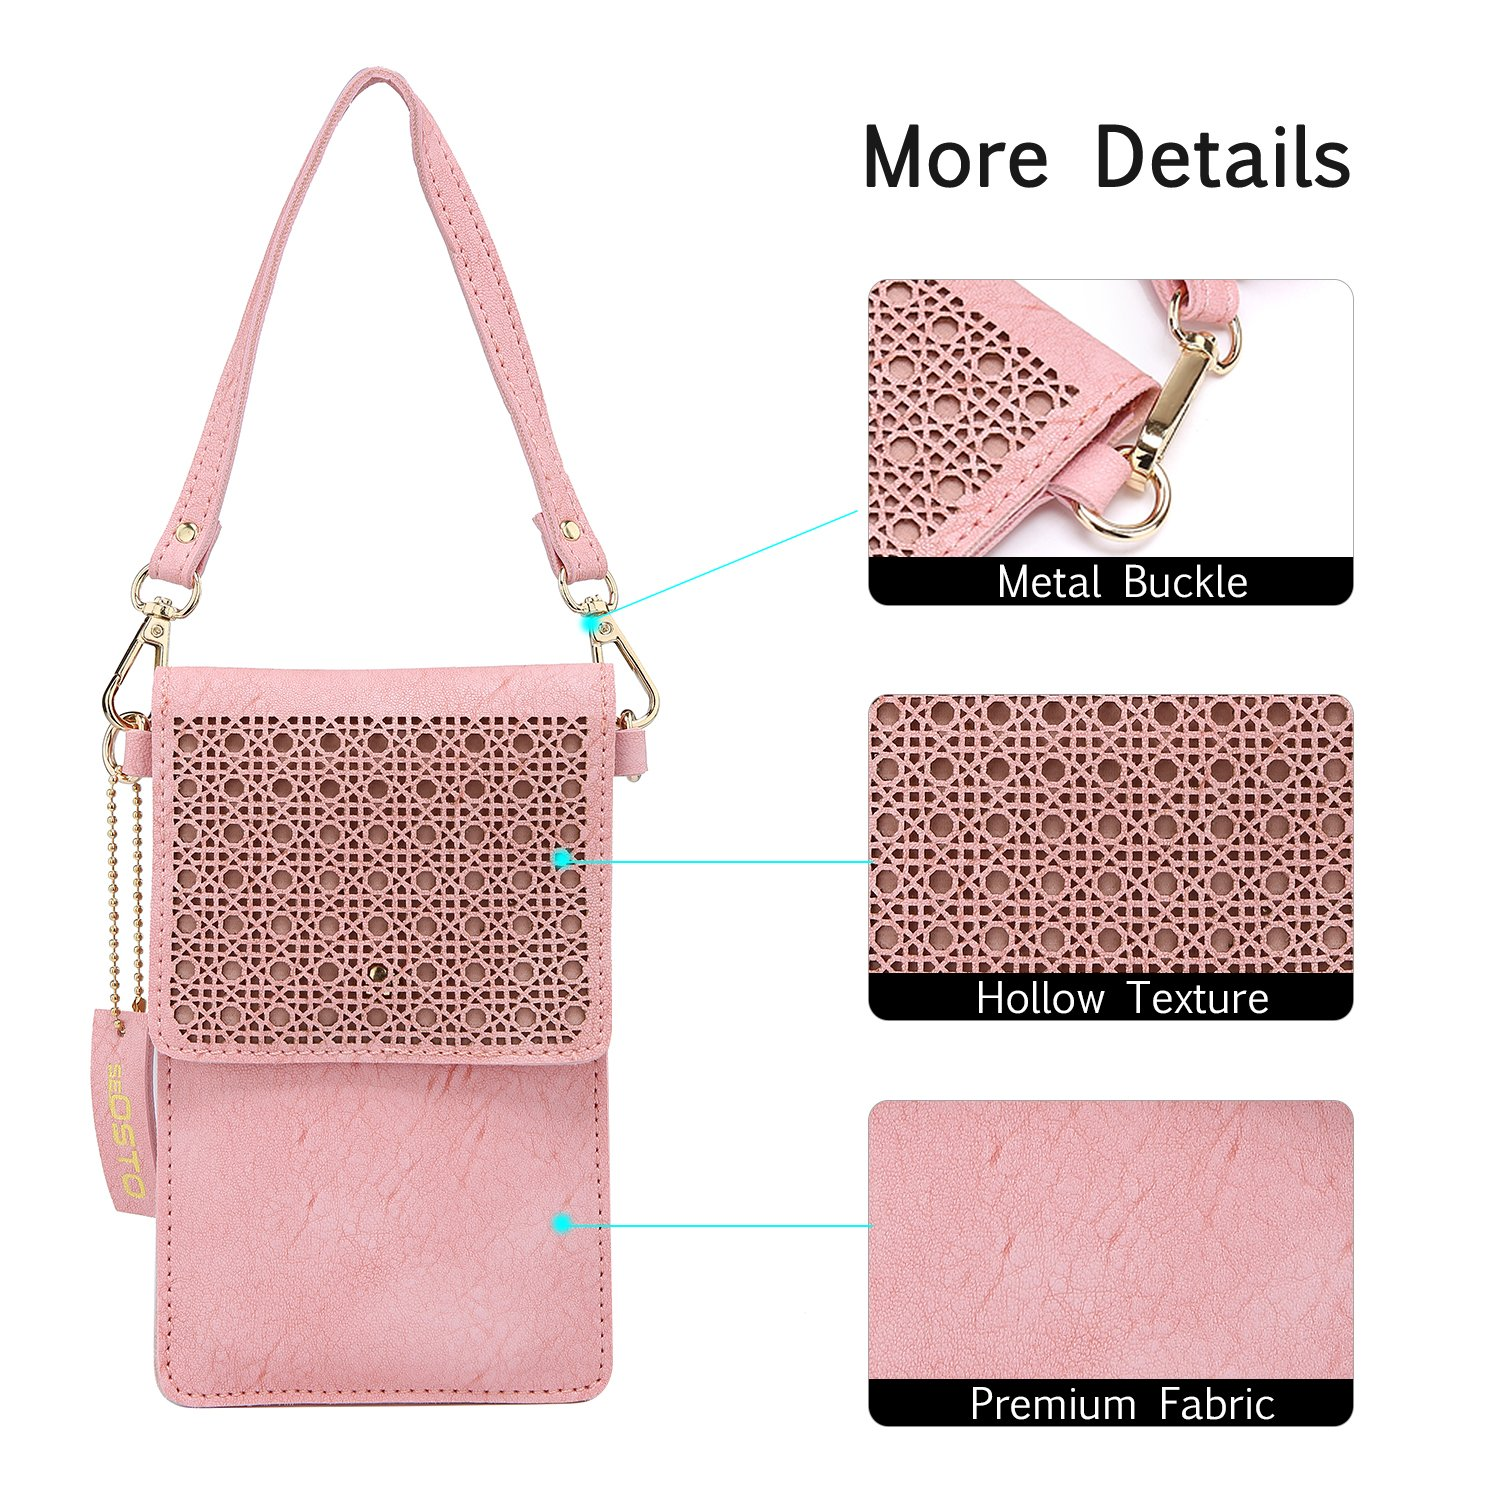 seOSTO Small Crossbody Bag, Cell Phone Purse Smartphone Wallet with 2 Shoulder Strap Handbag for Women (pink) by seOSTO (Image #4)